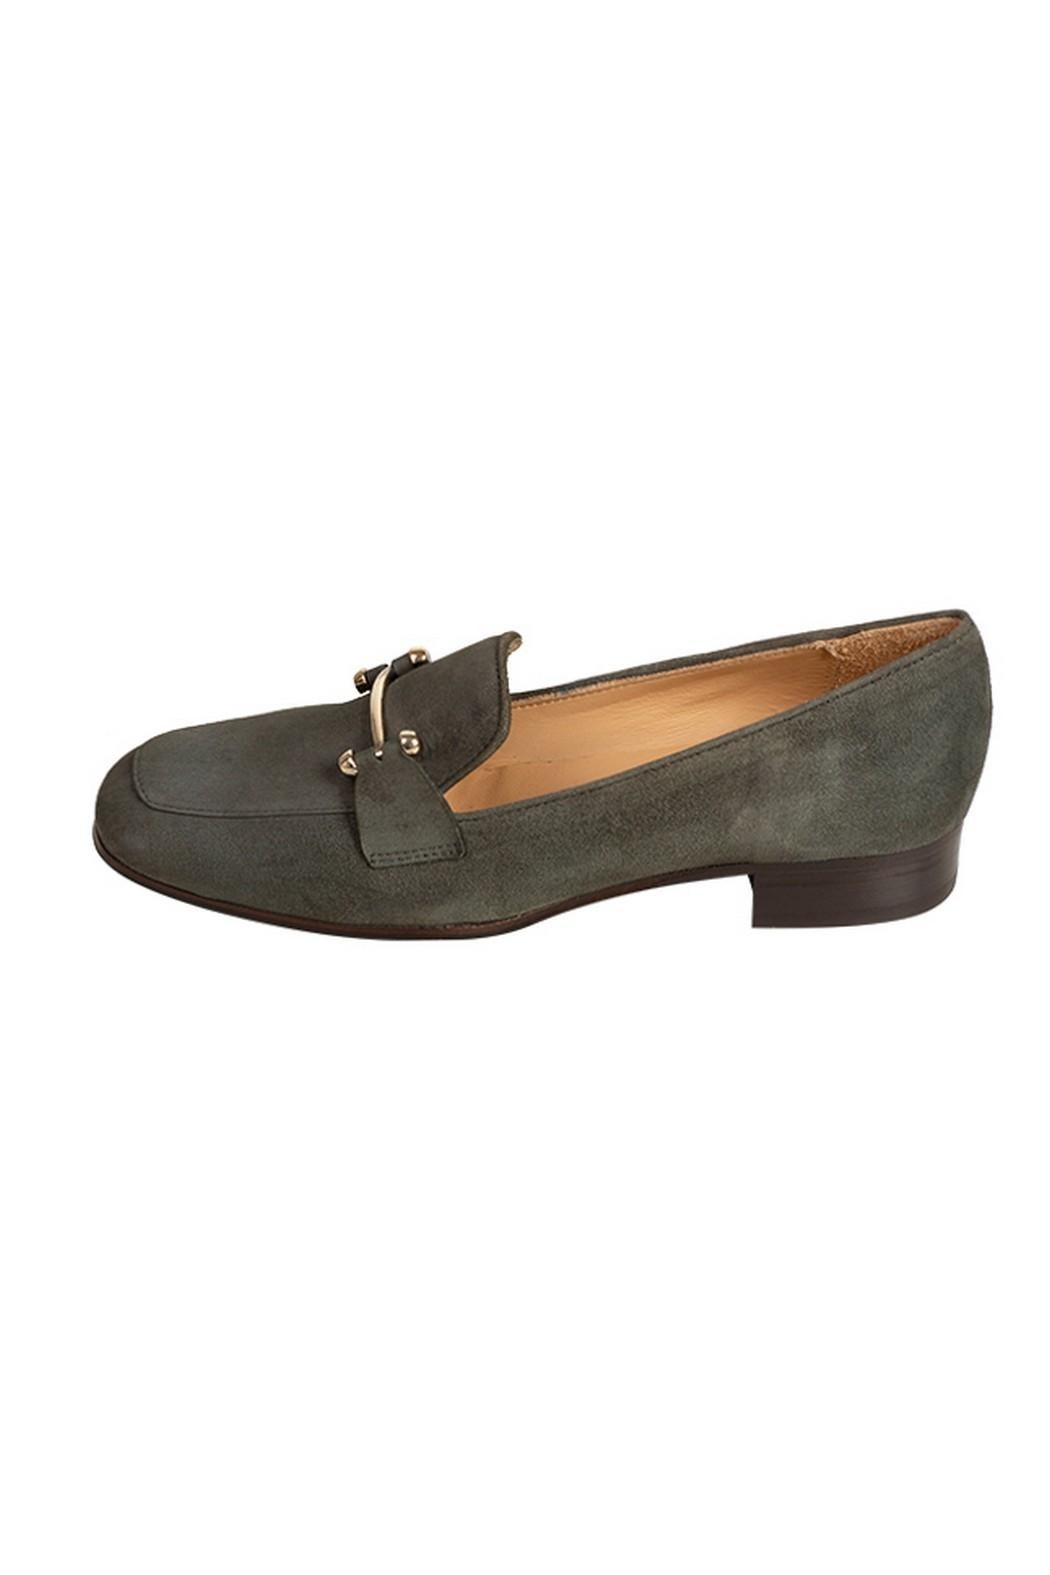 Pascucci Forest-Green Suede Loafers - Main Image